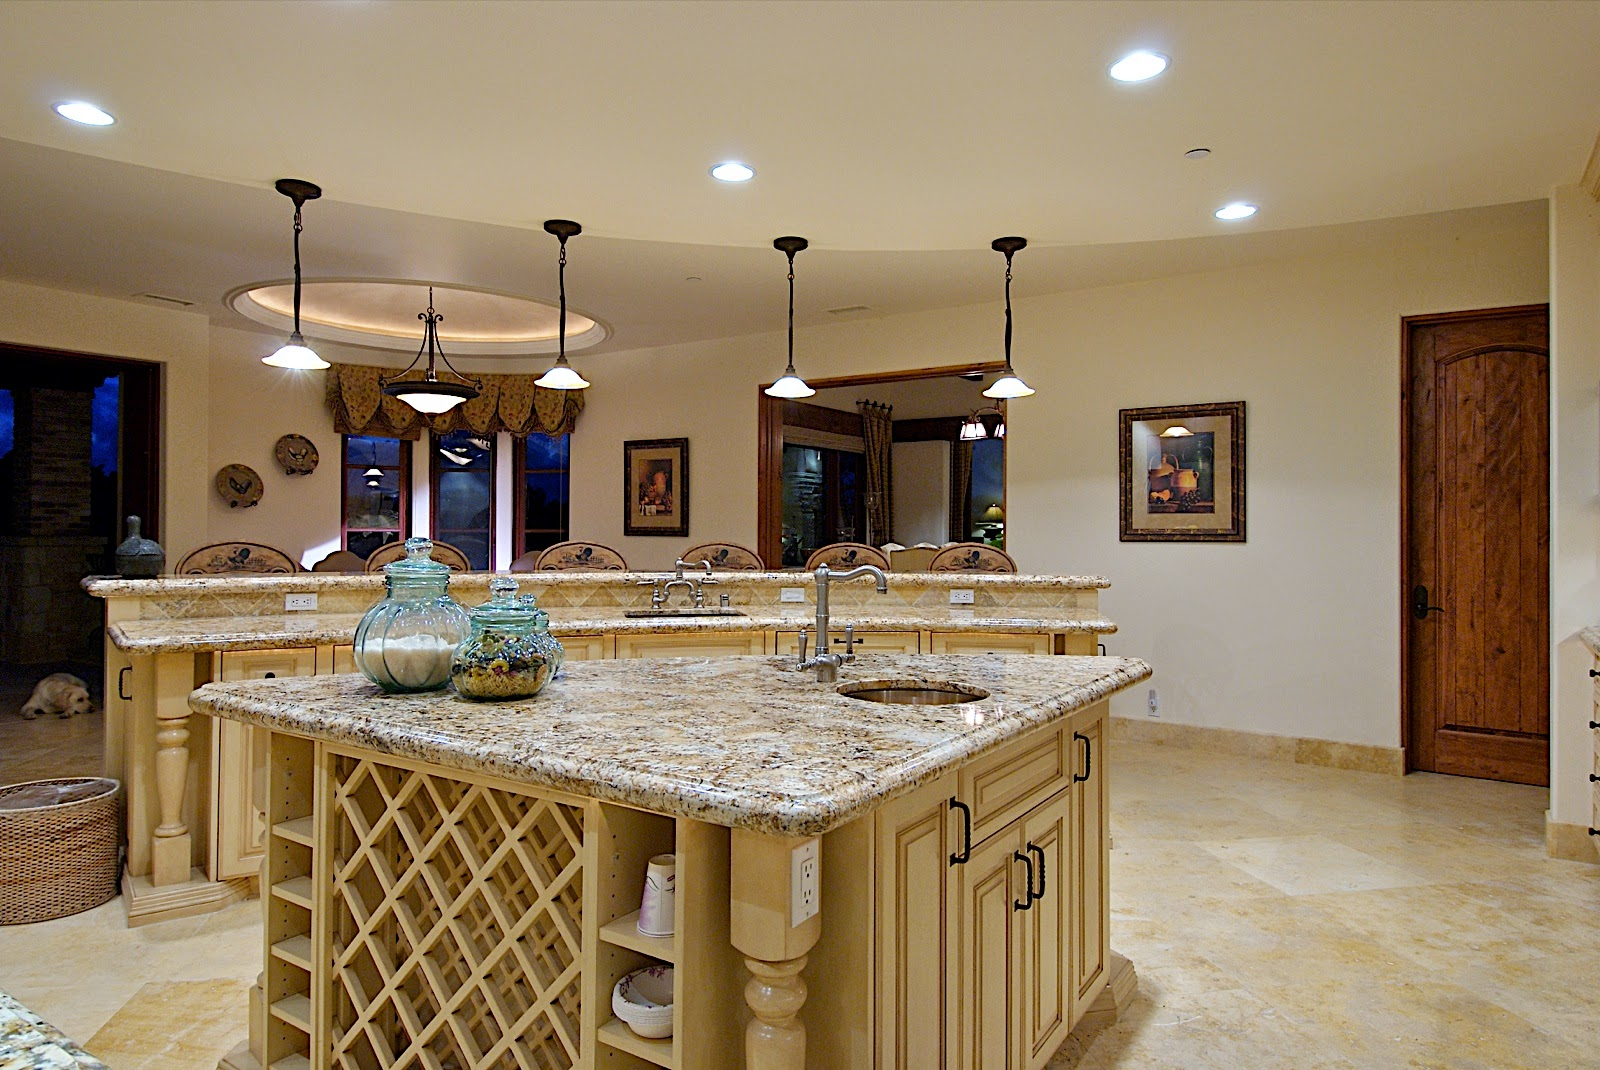 Kitchen Lighting Fixtures Lowes Home Design Ideas For Low Ceilings Best Free Home Design